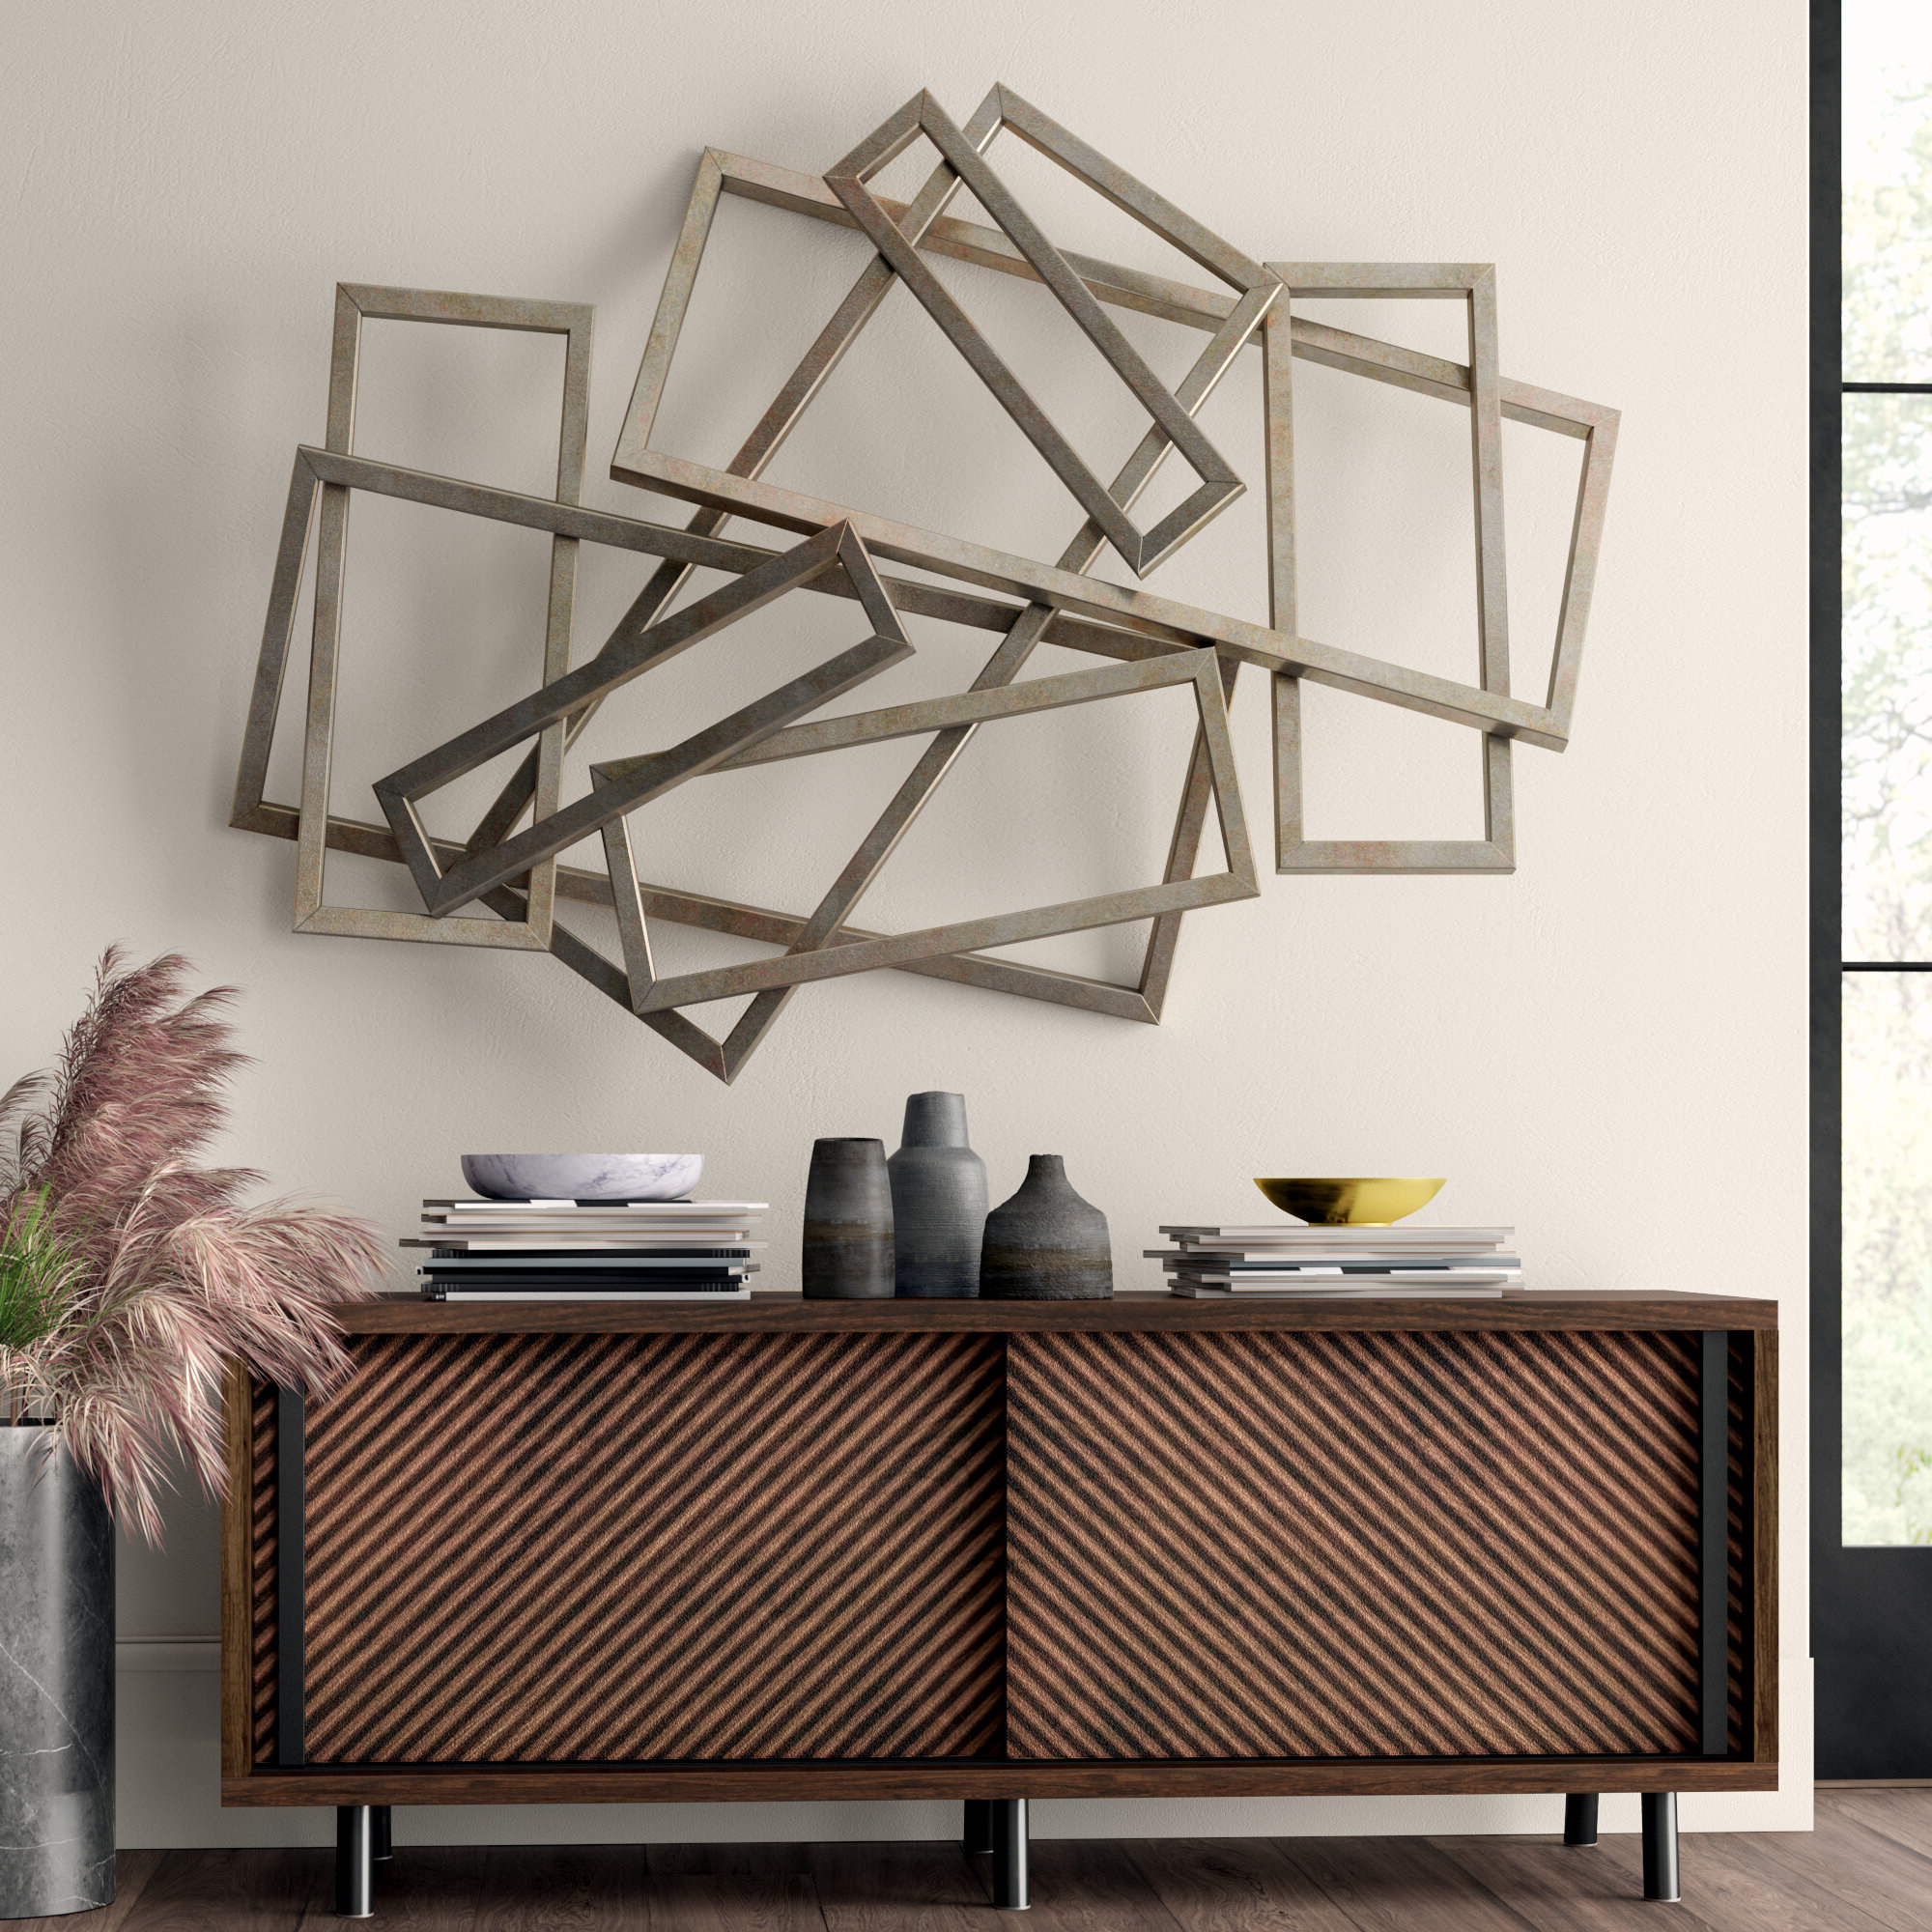 [%metal Wall Decor | Up To 60% Off Through 02/16 With Best And Newest Olive/gray Metal Wall Decor By Brayden Studio|olive/gray Metal Wall Decor By Brayden Studio Intended For Popular Metal Wall Decor | Up To 60% Off Through 02/16|2020 Olive/gray Metal Wall Decor By Brayden Studio Regarding Metal Wall Decor | Up To 60% Off Through 02/16|most Current Metal Wall Decor | Up To 60% Off Through 02/16 Regarding Olive/gray Metal Wall Decor By Brayden Studio%] (View 7 of 20)